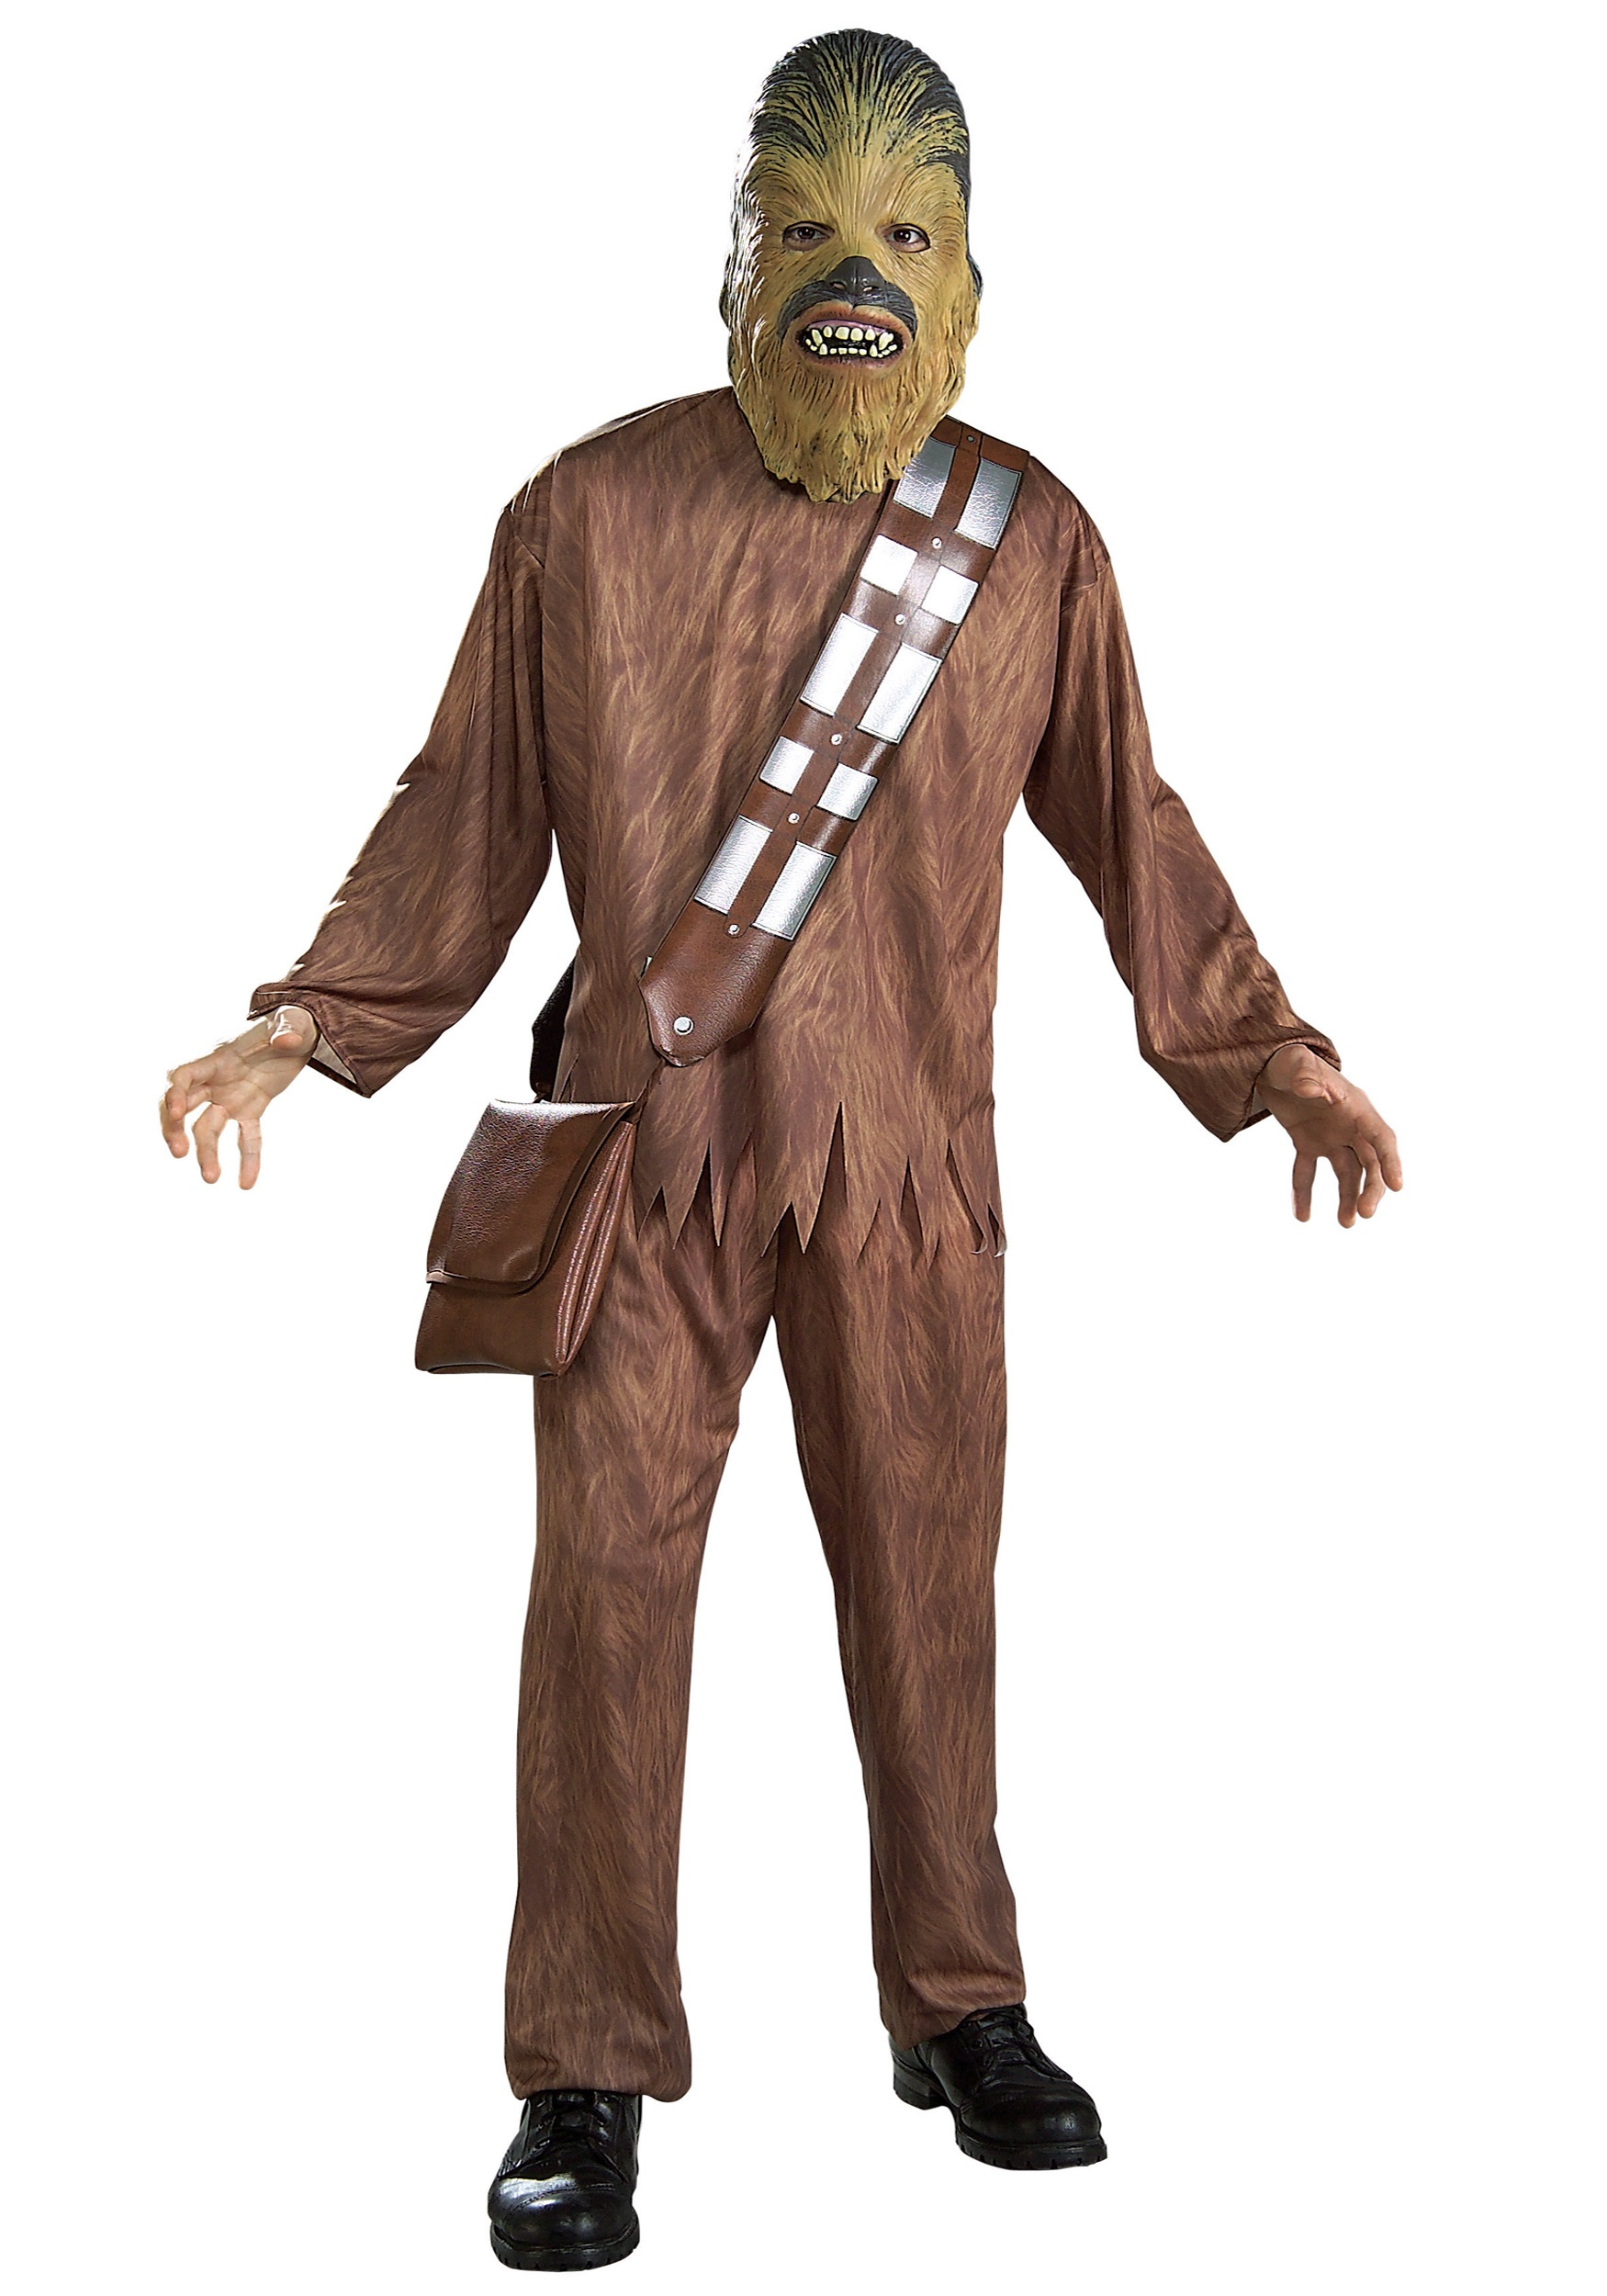 Chewbacca Costume  sc 1 st  Halloween Costume : jar jar binks halloween costume  - Germanpascual.Com